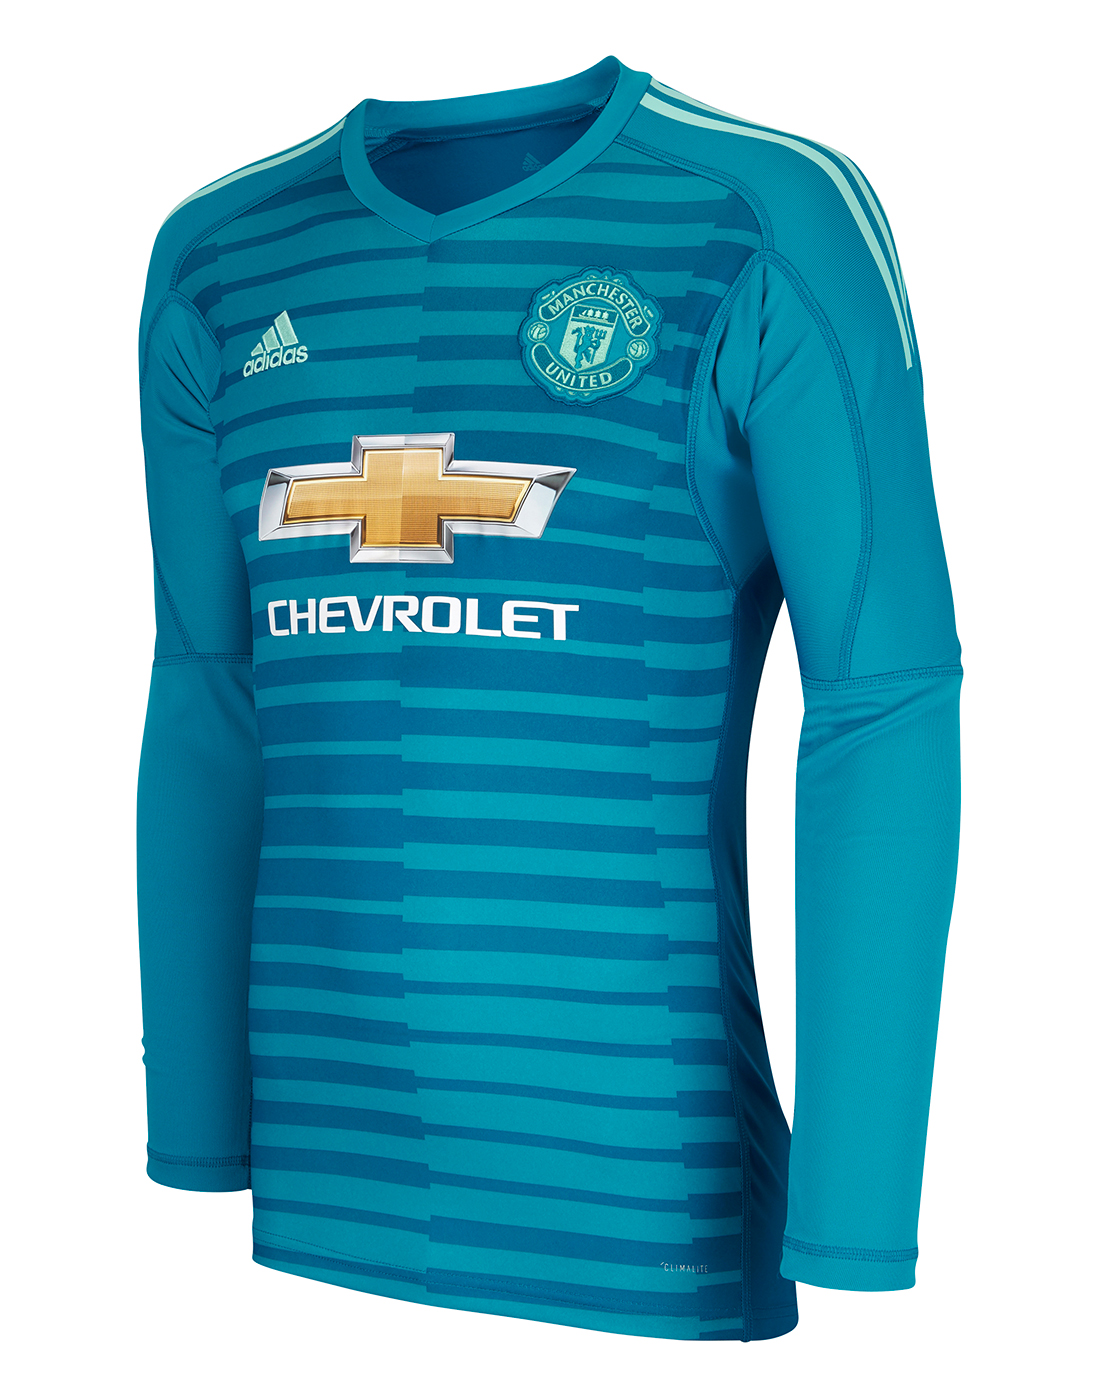 finest selection 1e44b 27cee Man United 18/19 Goalkeeper Away Jersey | Life Style Sports